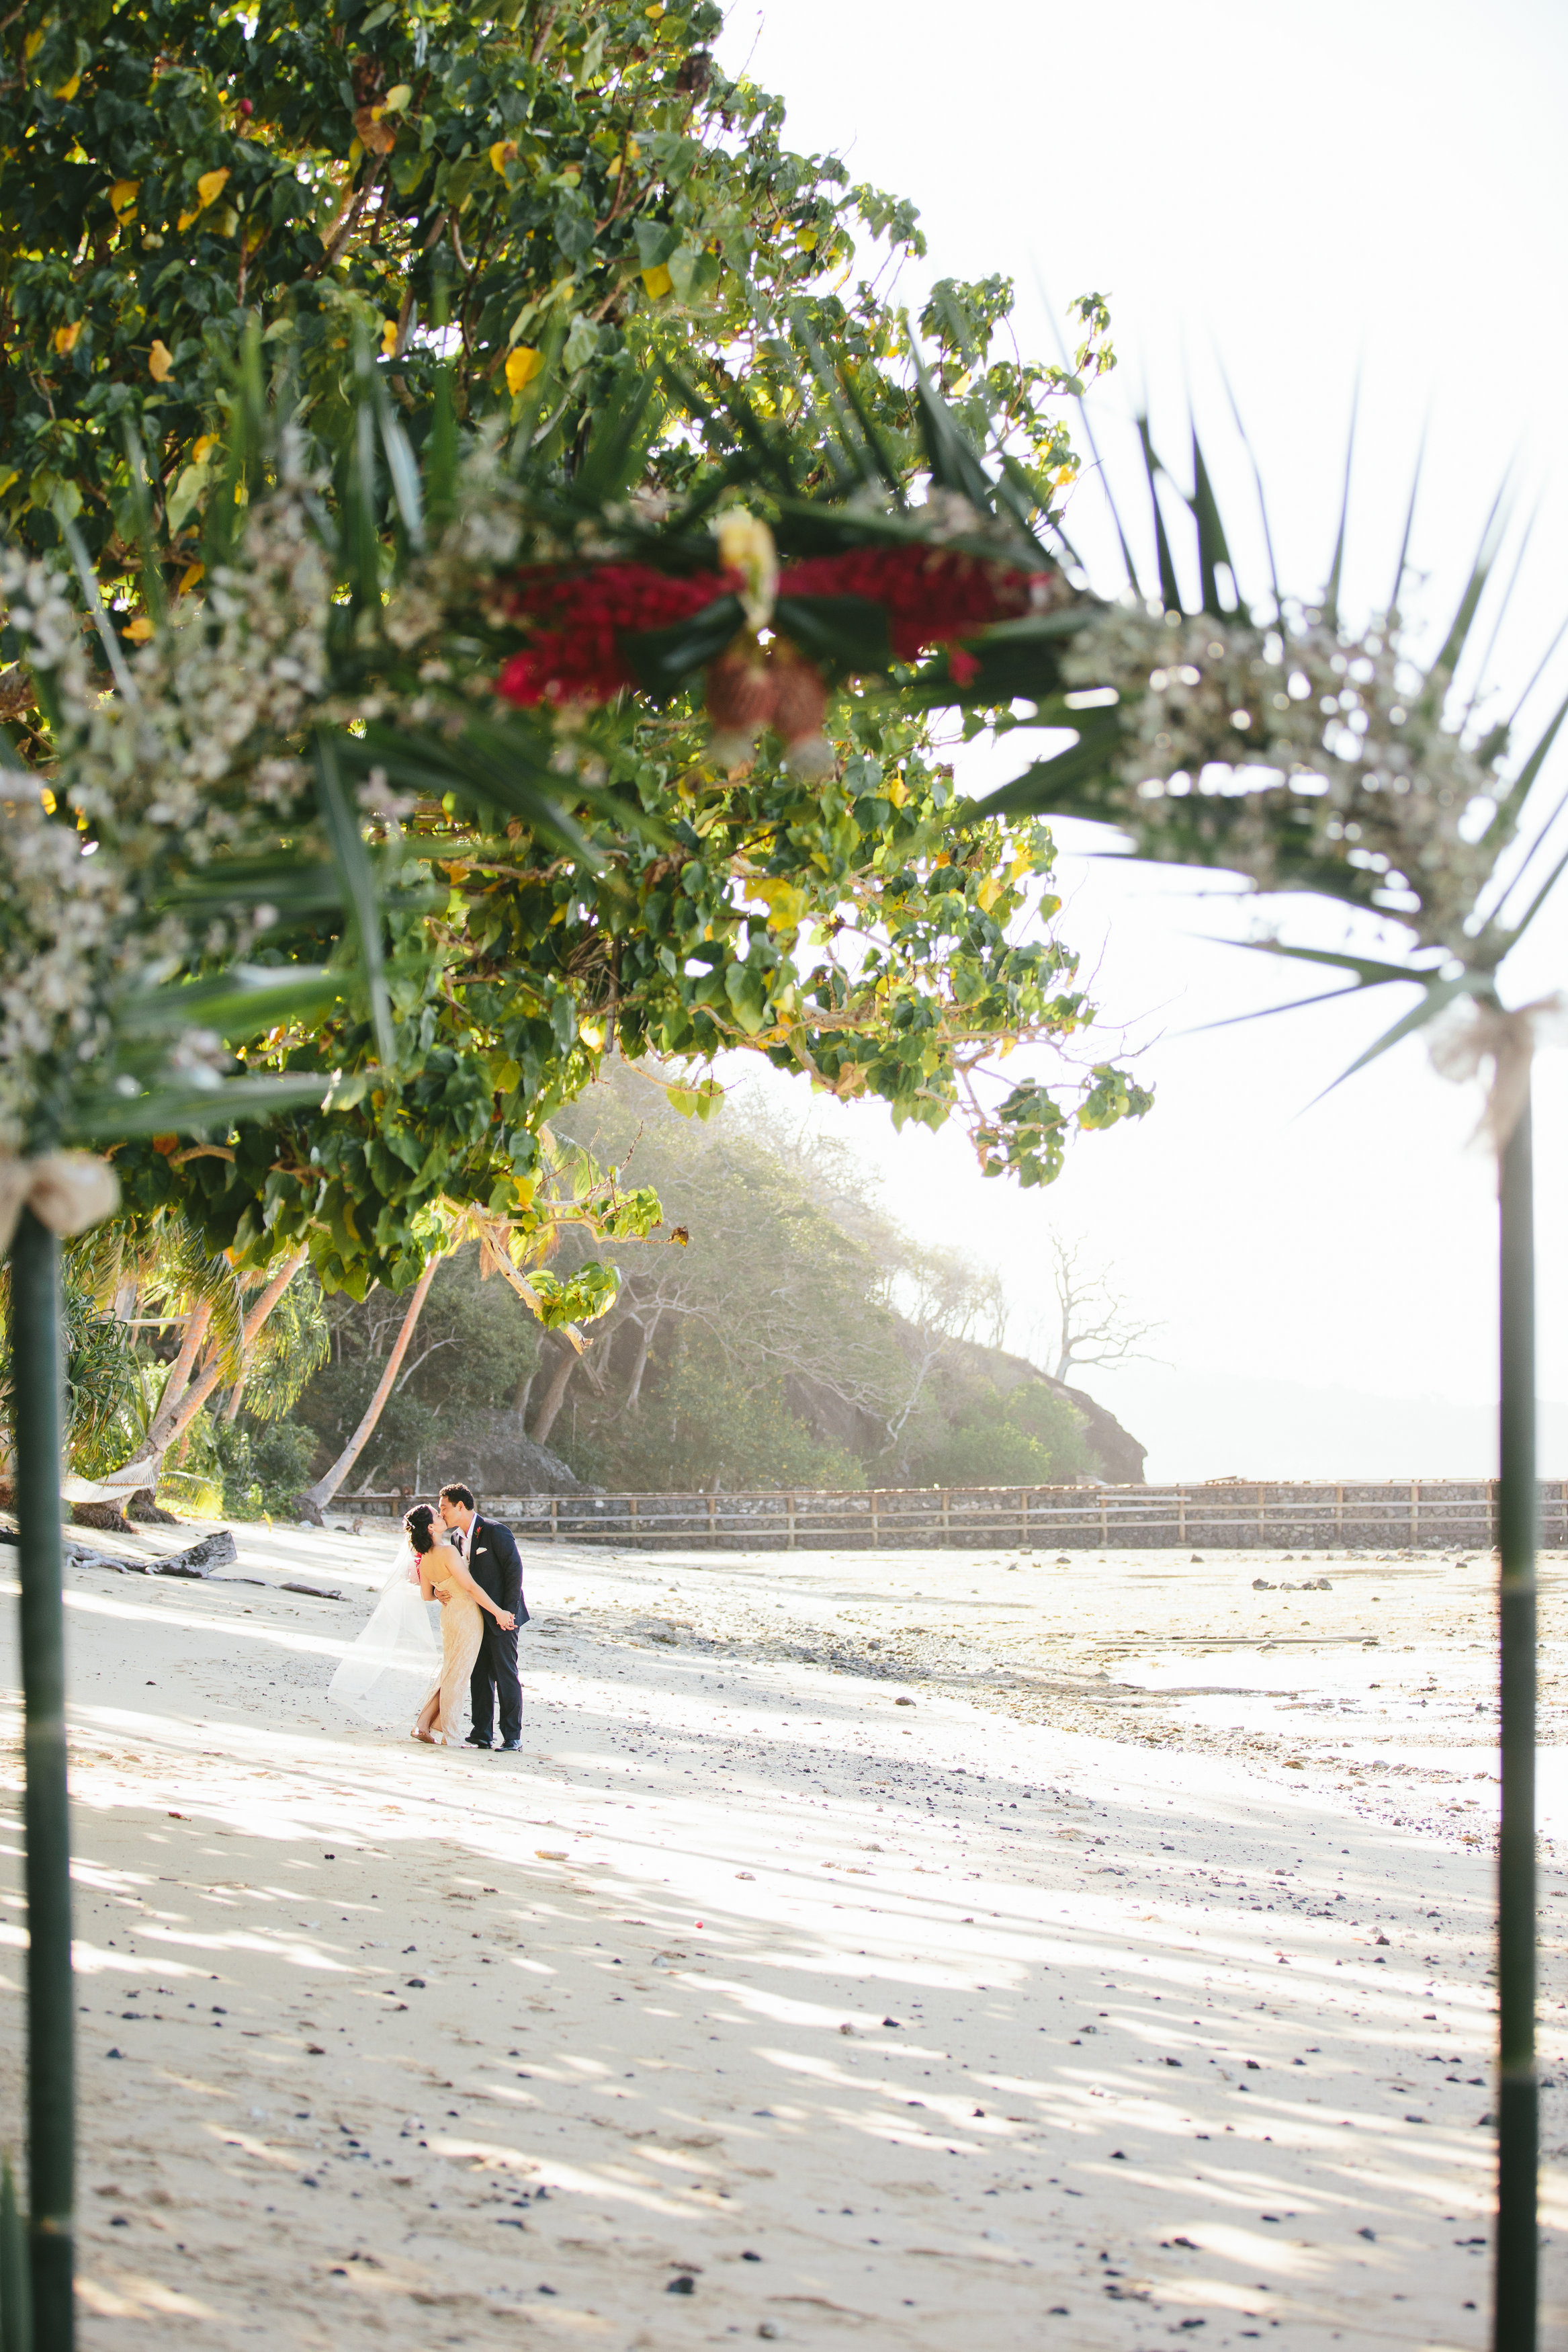 Elope to The Remote Resort, Fiji Islands for a private Fiji wedding experience